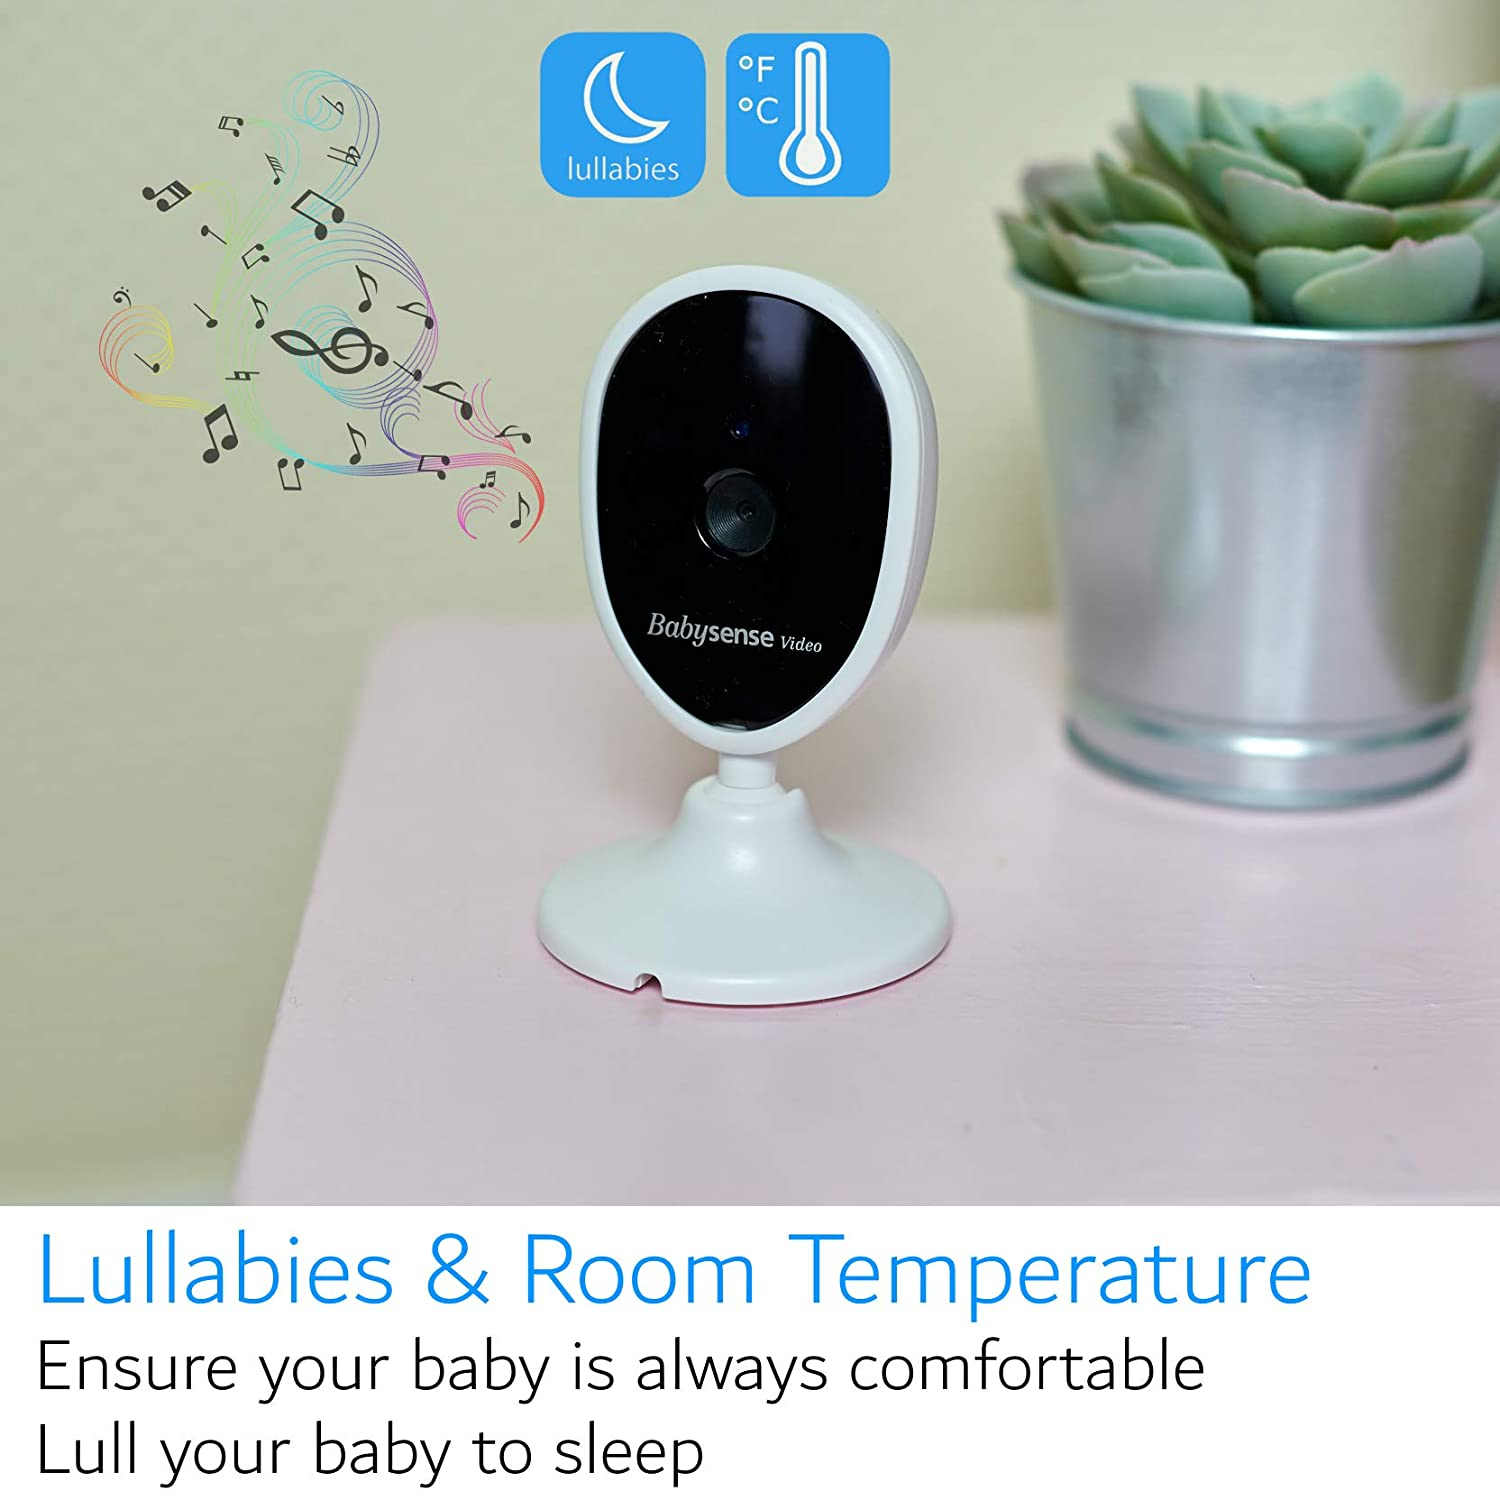 2.4 Inch LCD Display Hack-Free Lullabies Long Range Room Temperature Talk-Back Infrared Night Vision Upgraded Babysense Video Baby Monitor with Two Cameras